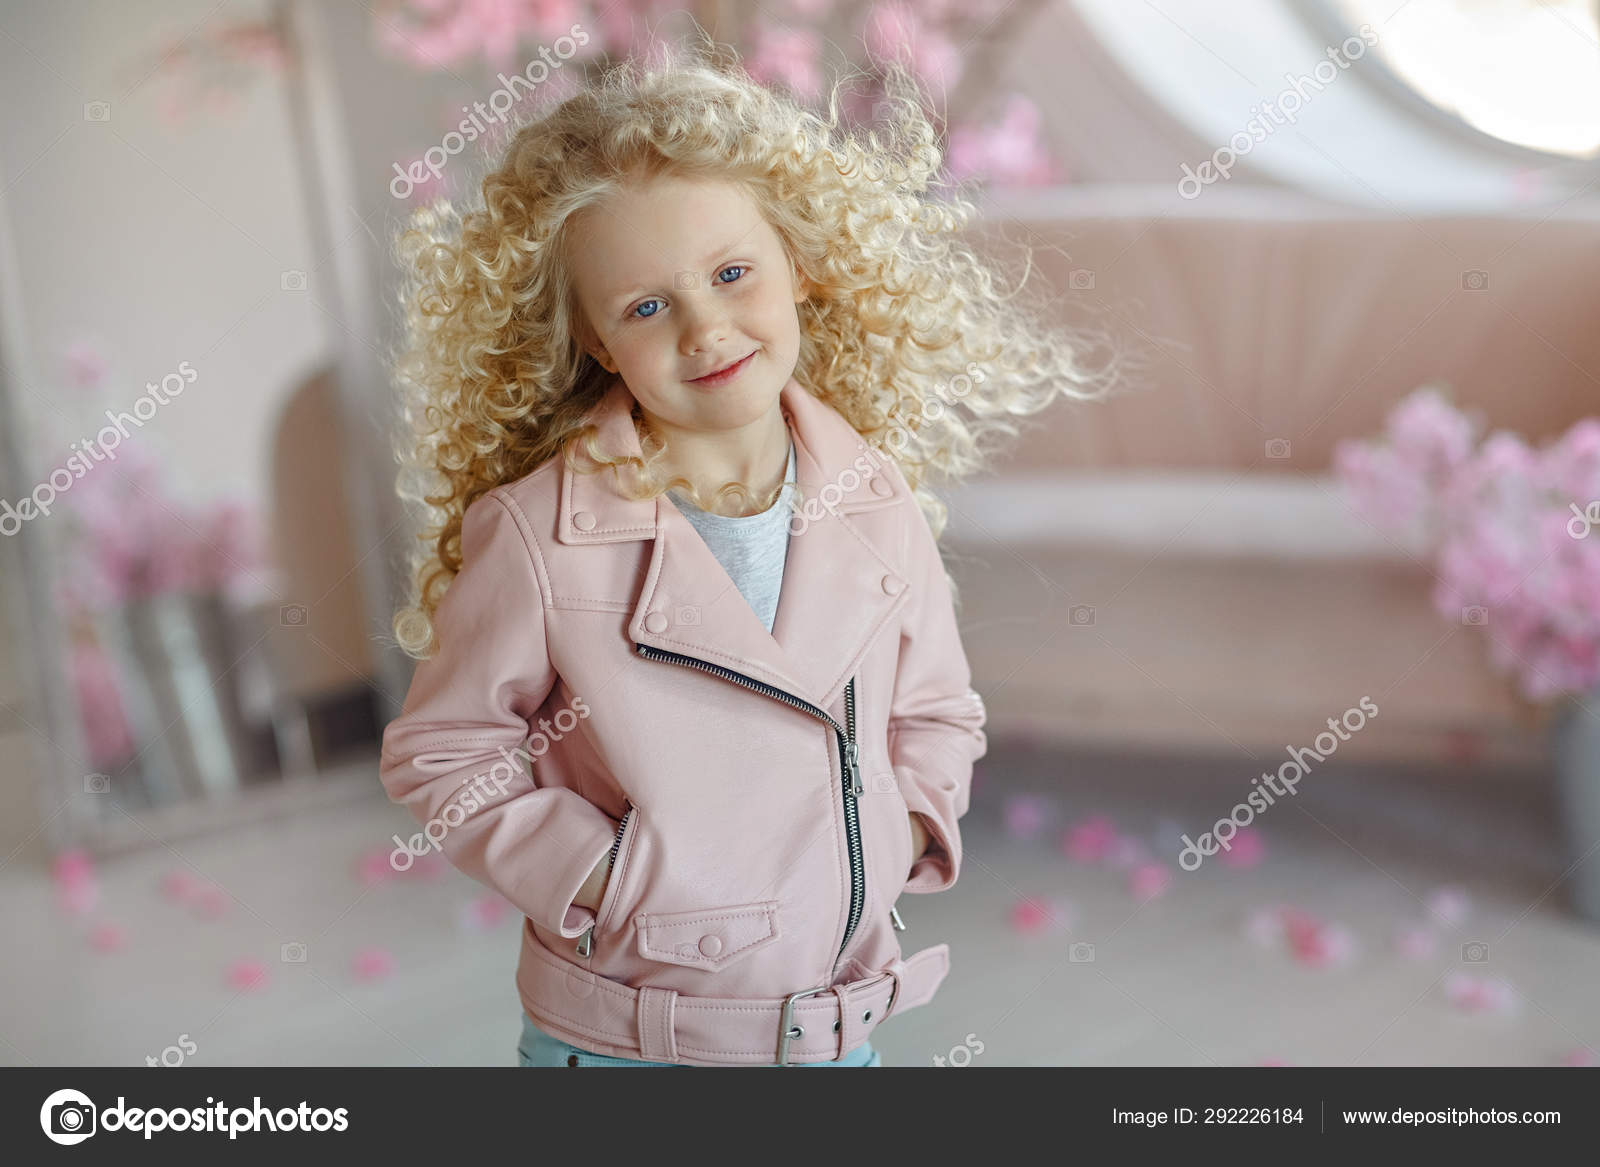 Little Pretty Girl Curly Blonde With Blue Eyes In A Pink Jacket Stock Photo C Coy Creek 292226184